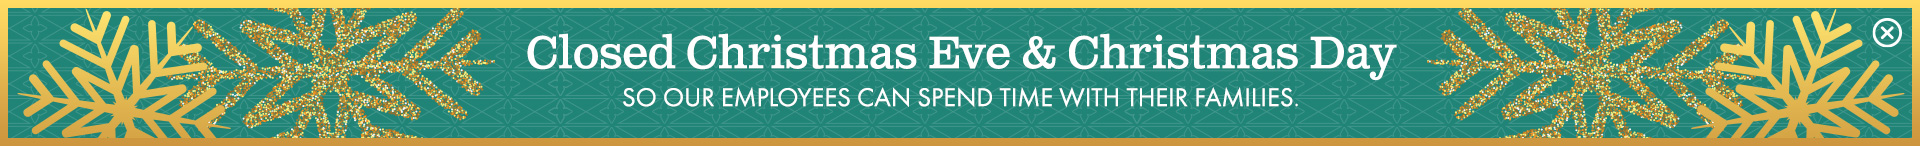 Closed Christmas Eve & Christmas Day, so our employees can spend time with their families.